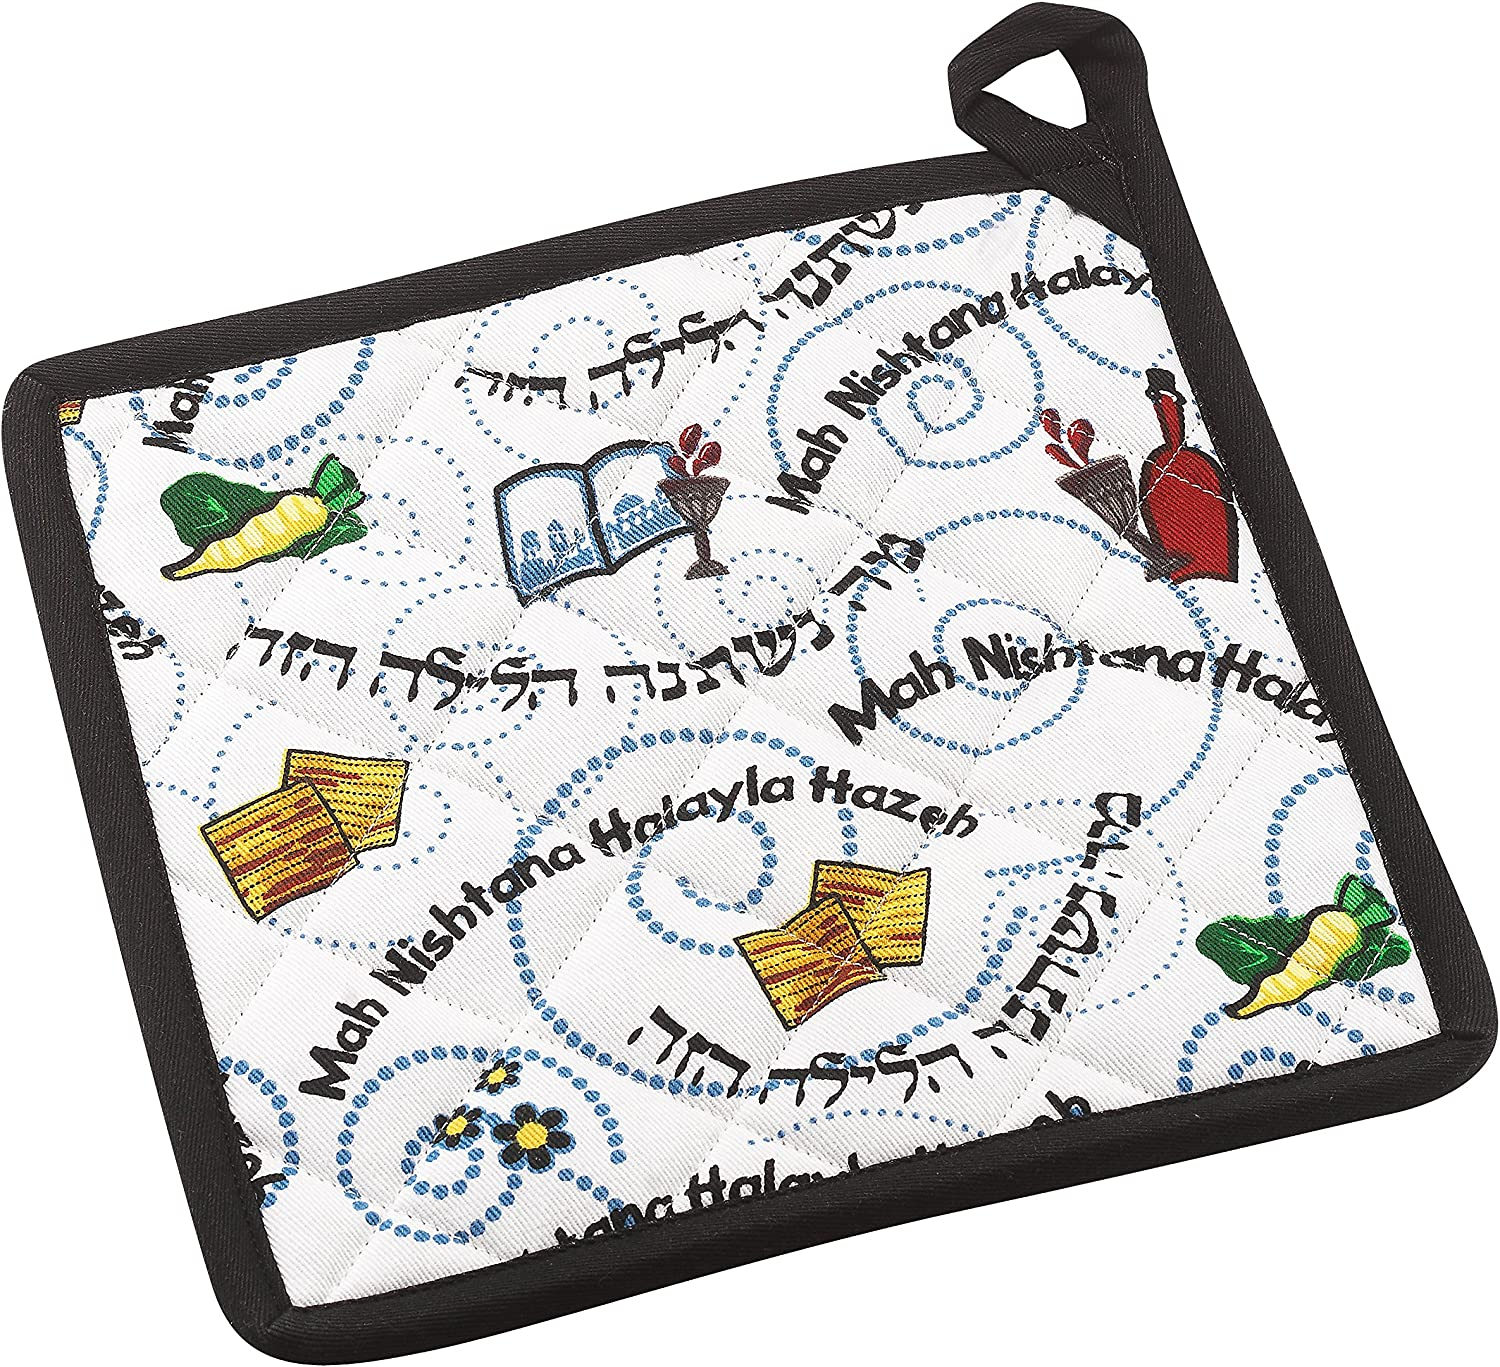 The Kosher Cook Passover Pot Holder Oven Mitt - Mah Nishtana Four Questions Print Design - 100% Cotton - Pesach Seder and Kitchen Accessories